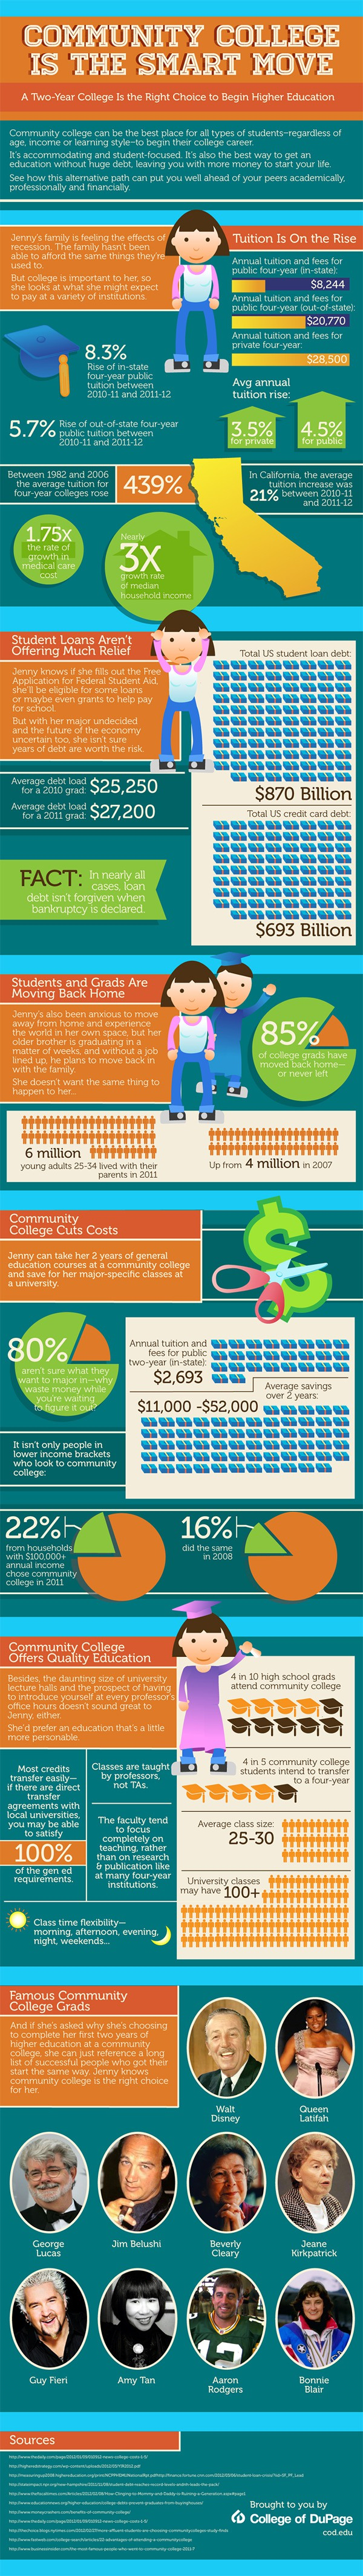 blog Image Infographic: Community College is the Smart Move